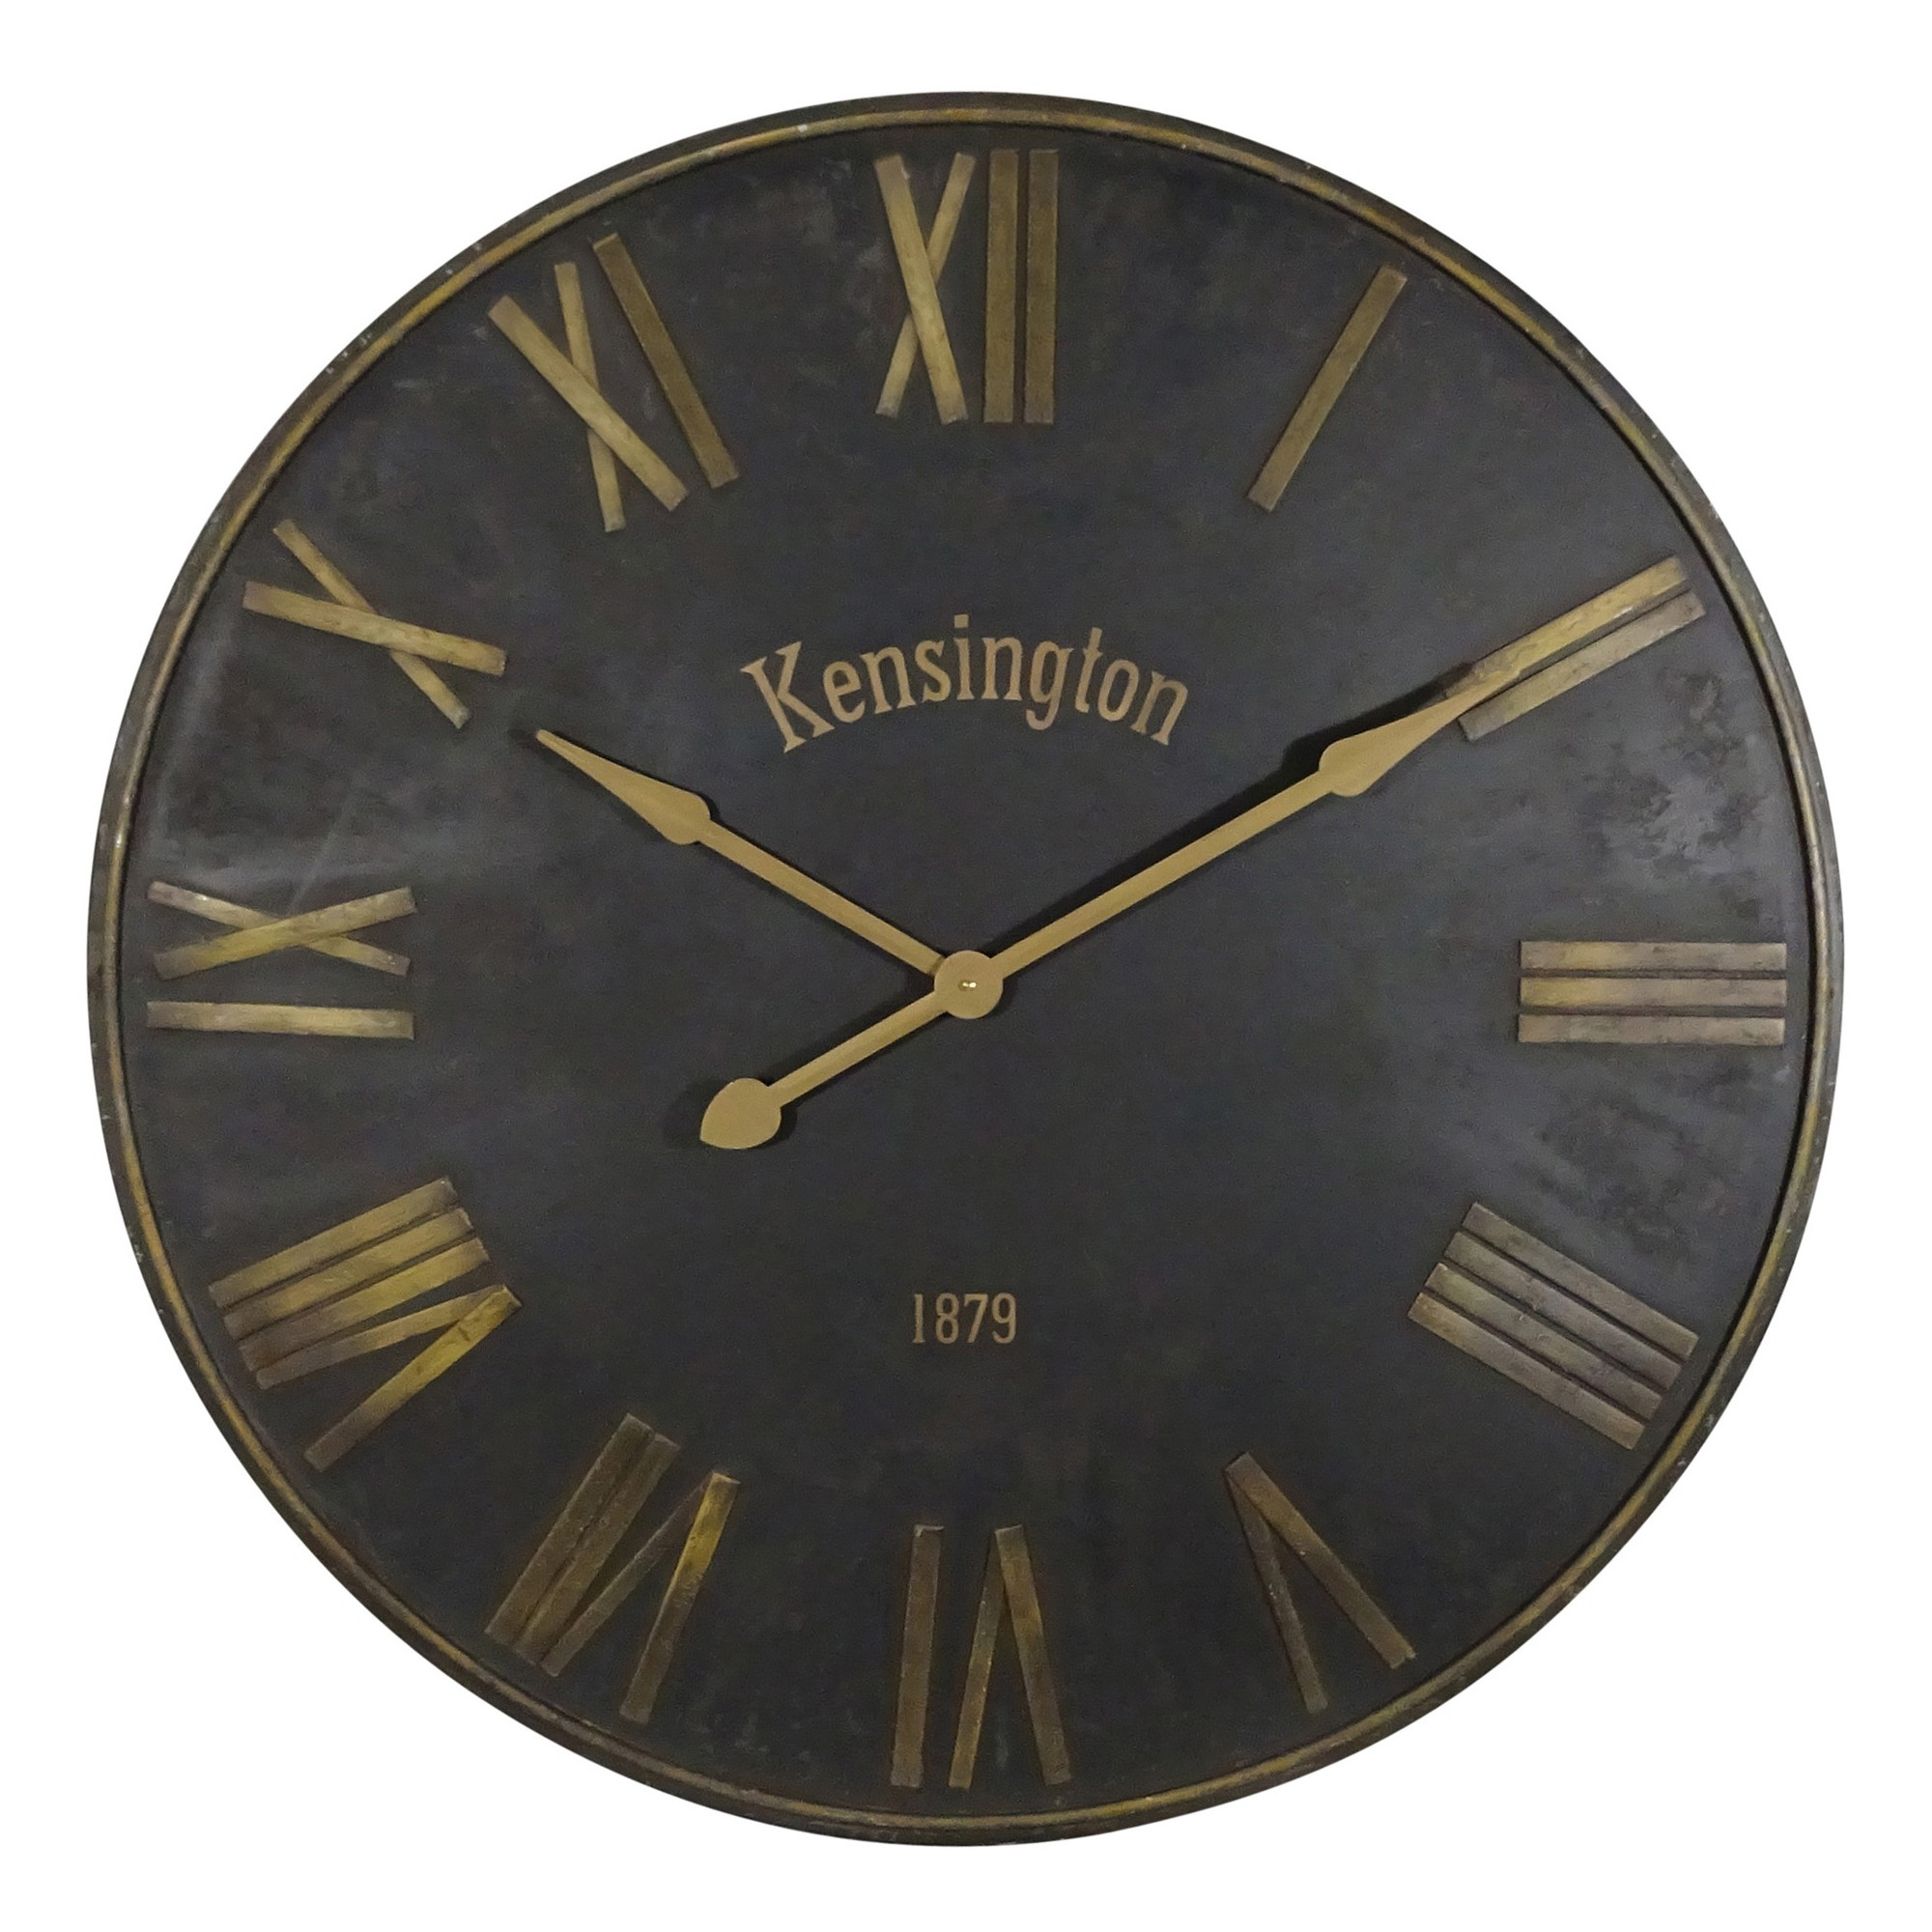 Kensington Iron Round Wall Clock, 92cm